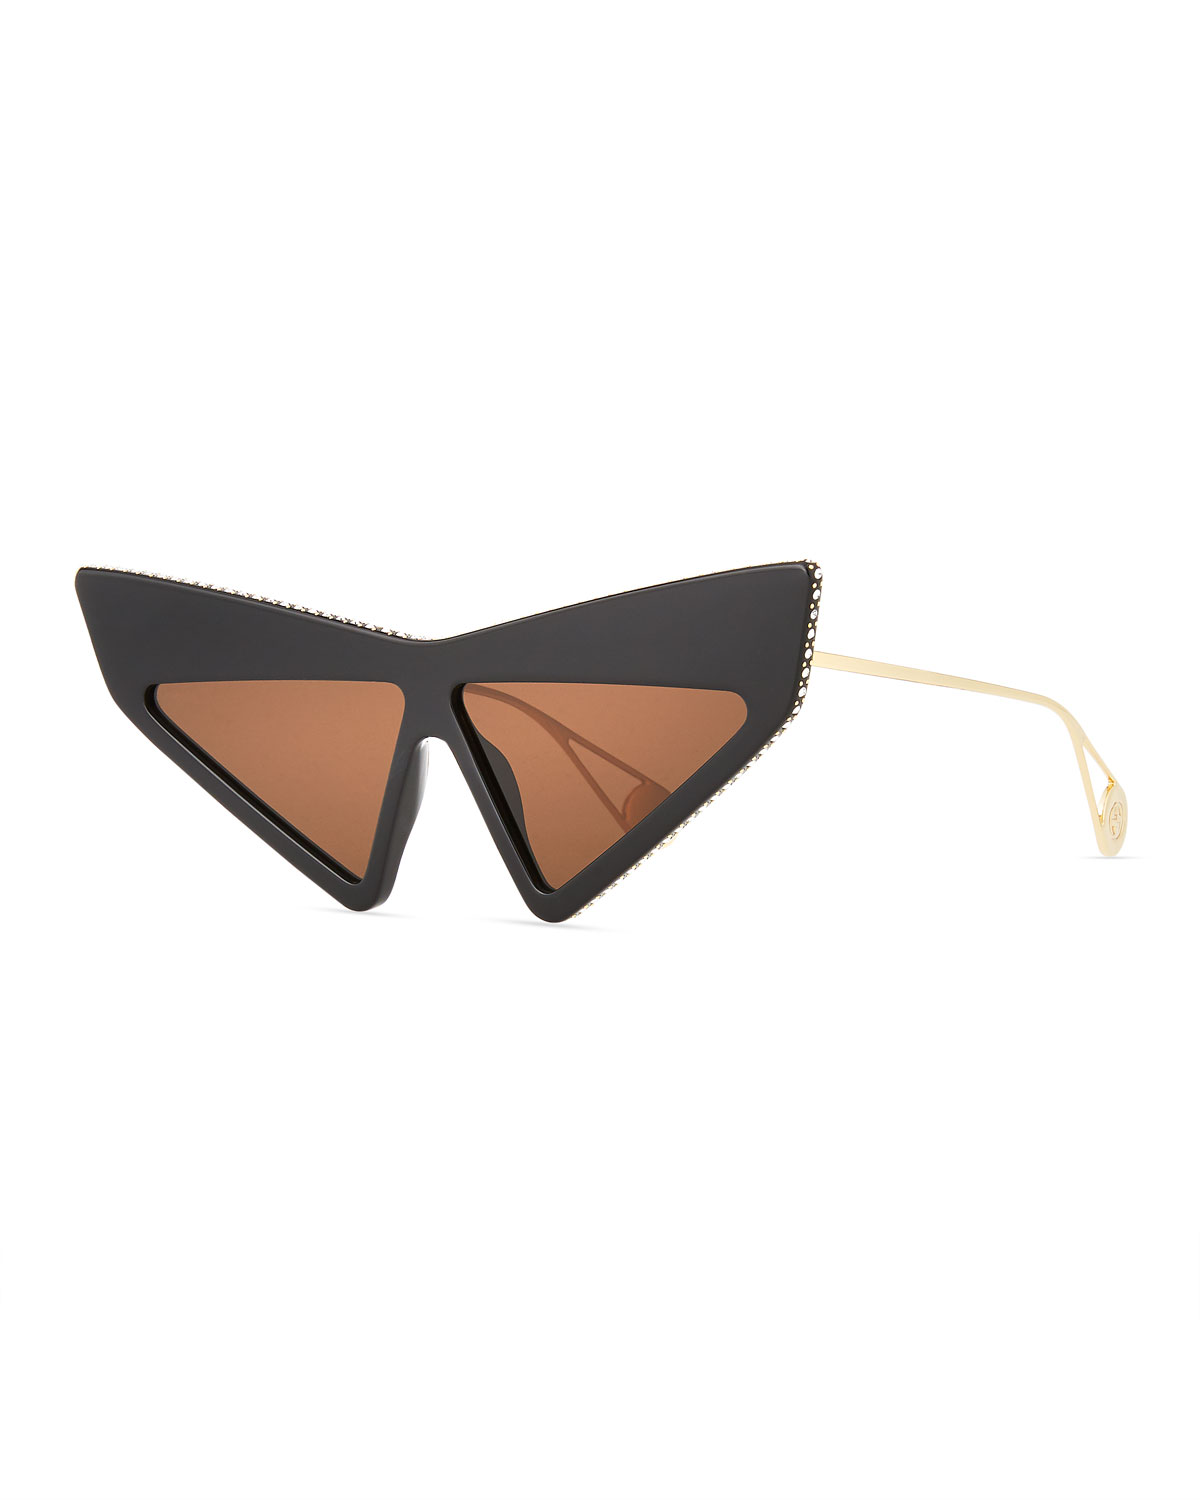 Crystal Studded Acetate Mask Cat-Eye Sunglasses in Black/Gold/Brown